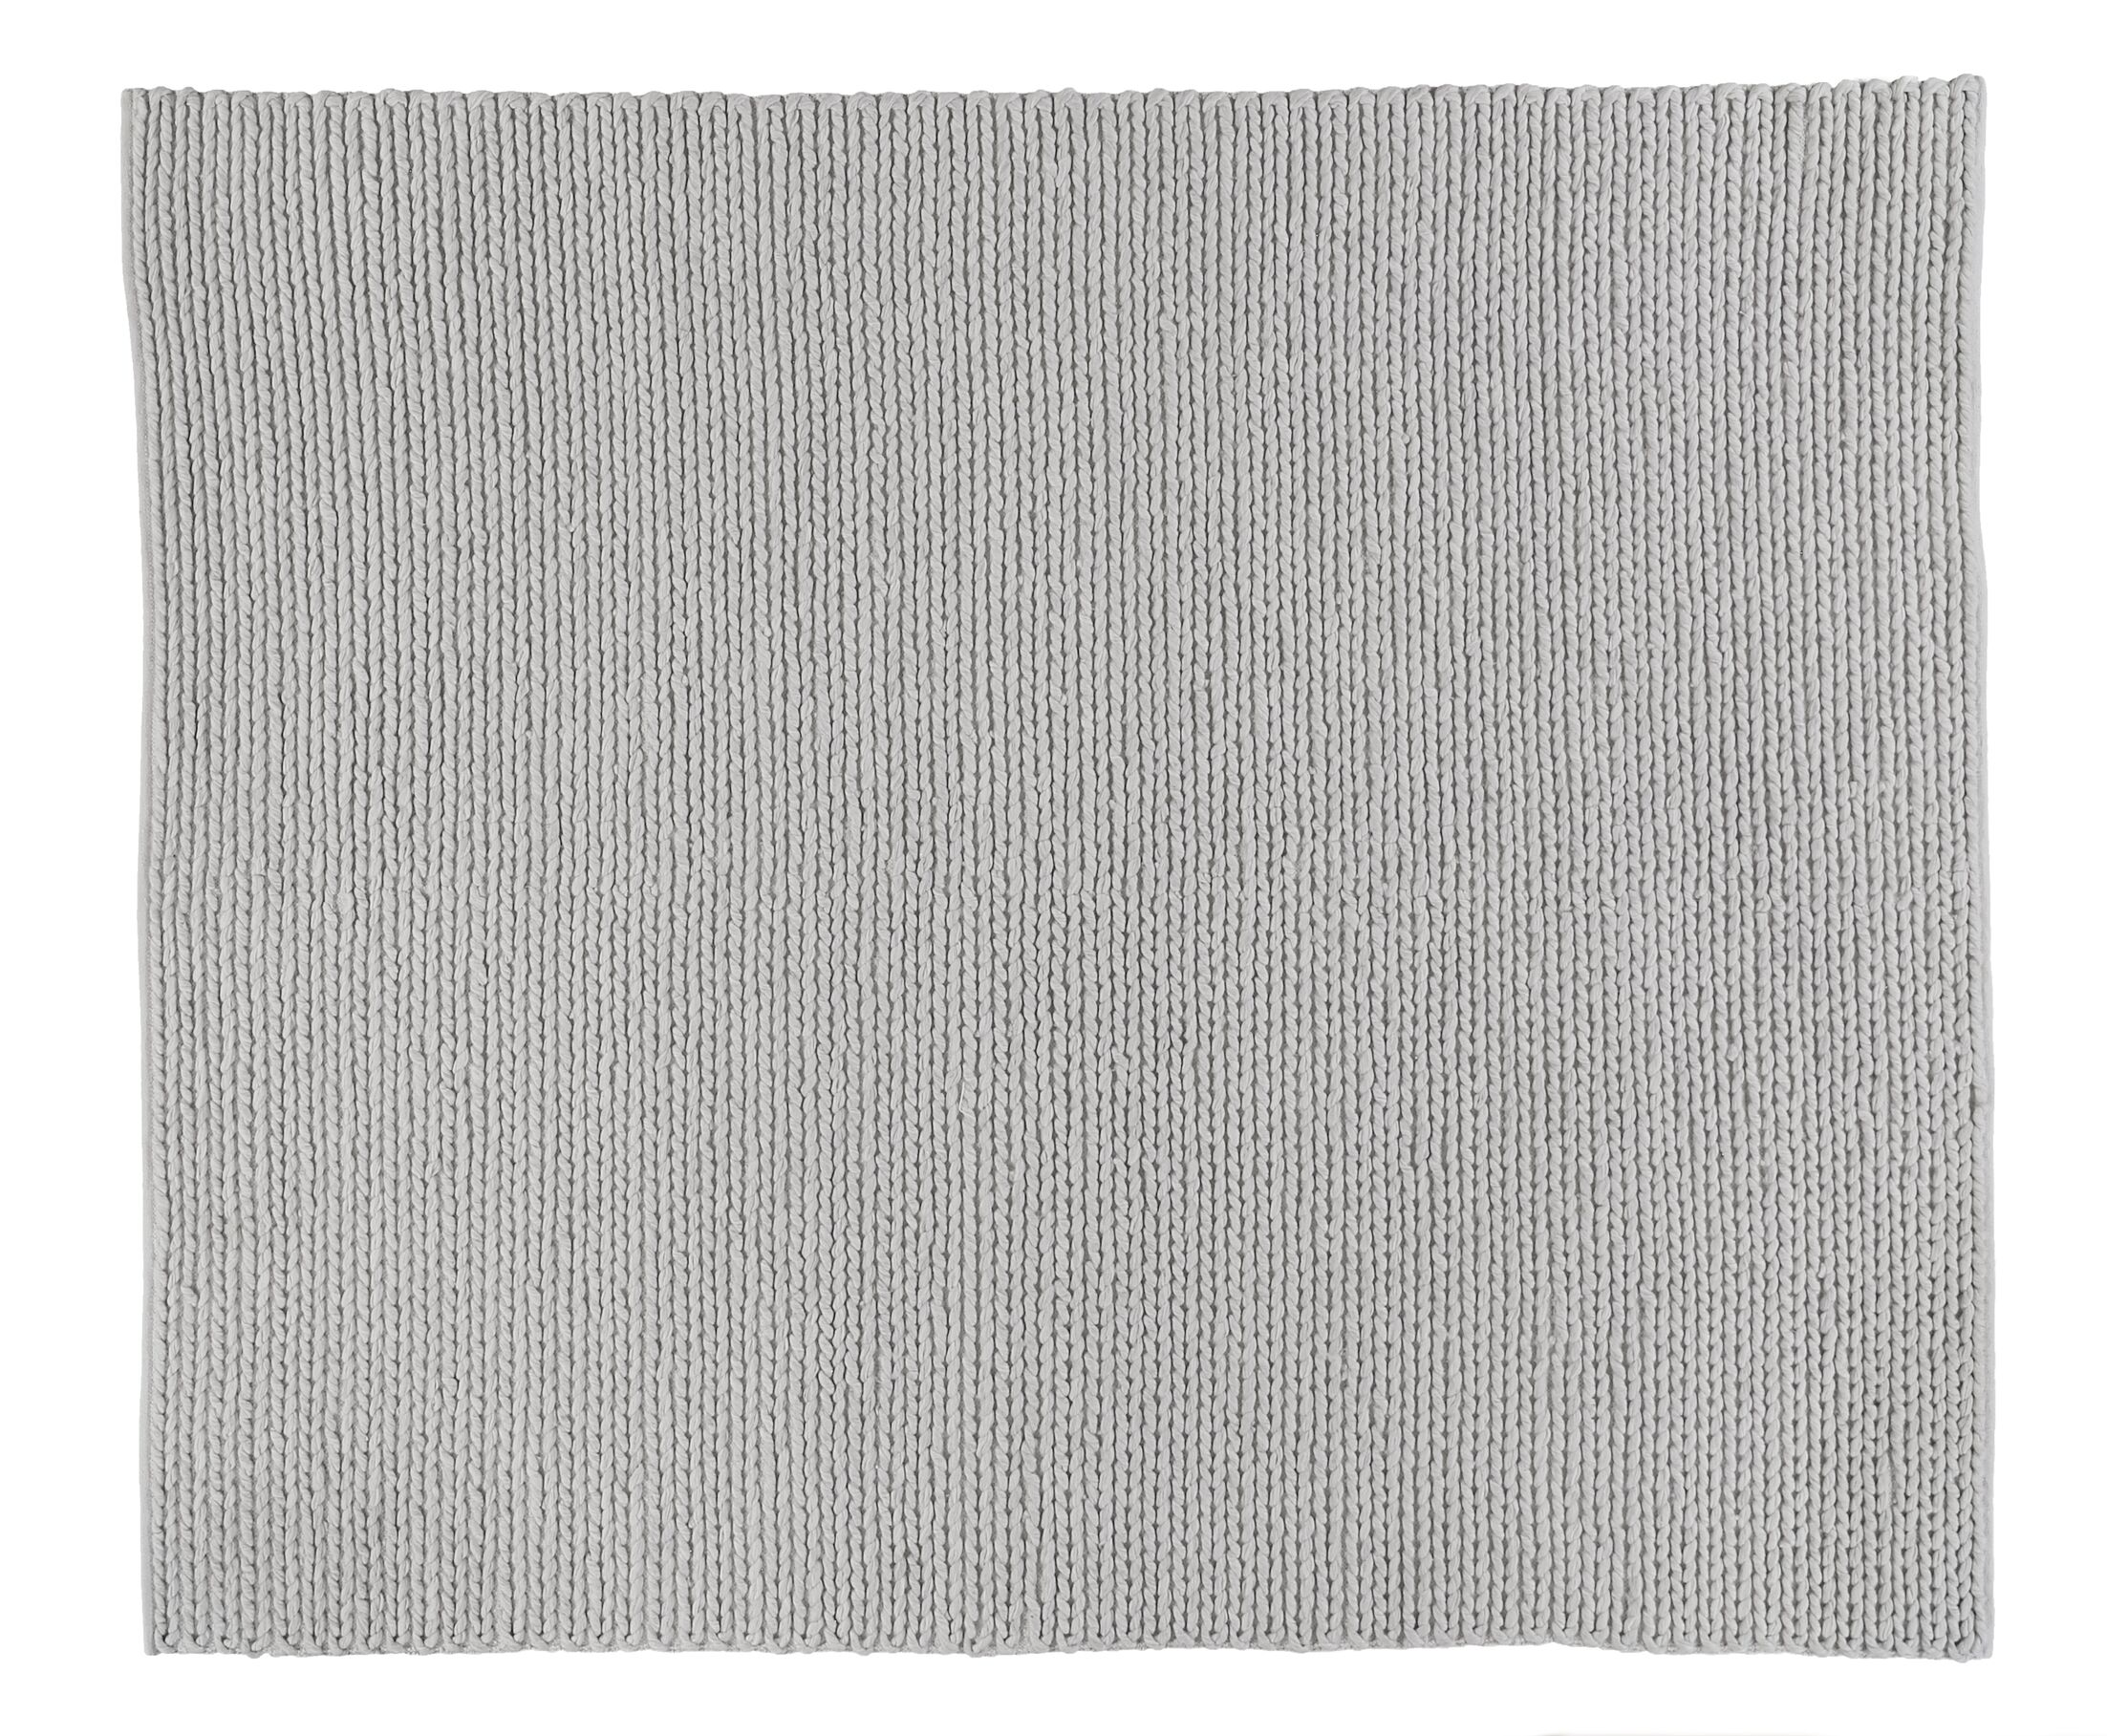 Arlow Hand-Woven Light Gray Area Rug Rug Size: Rectangle 9' x 12'